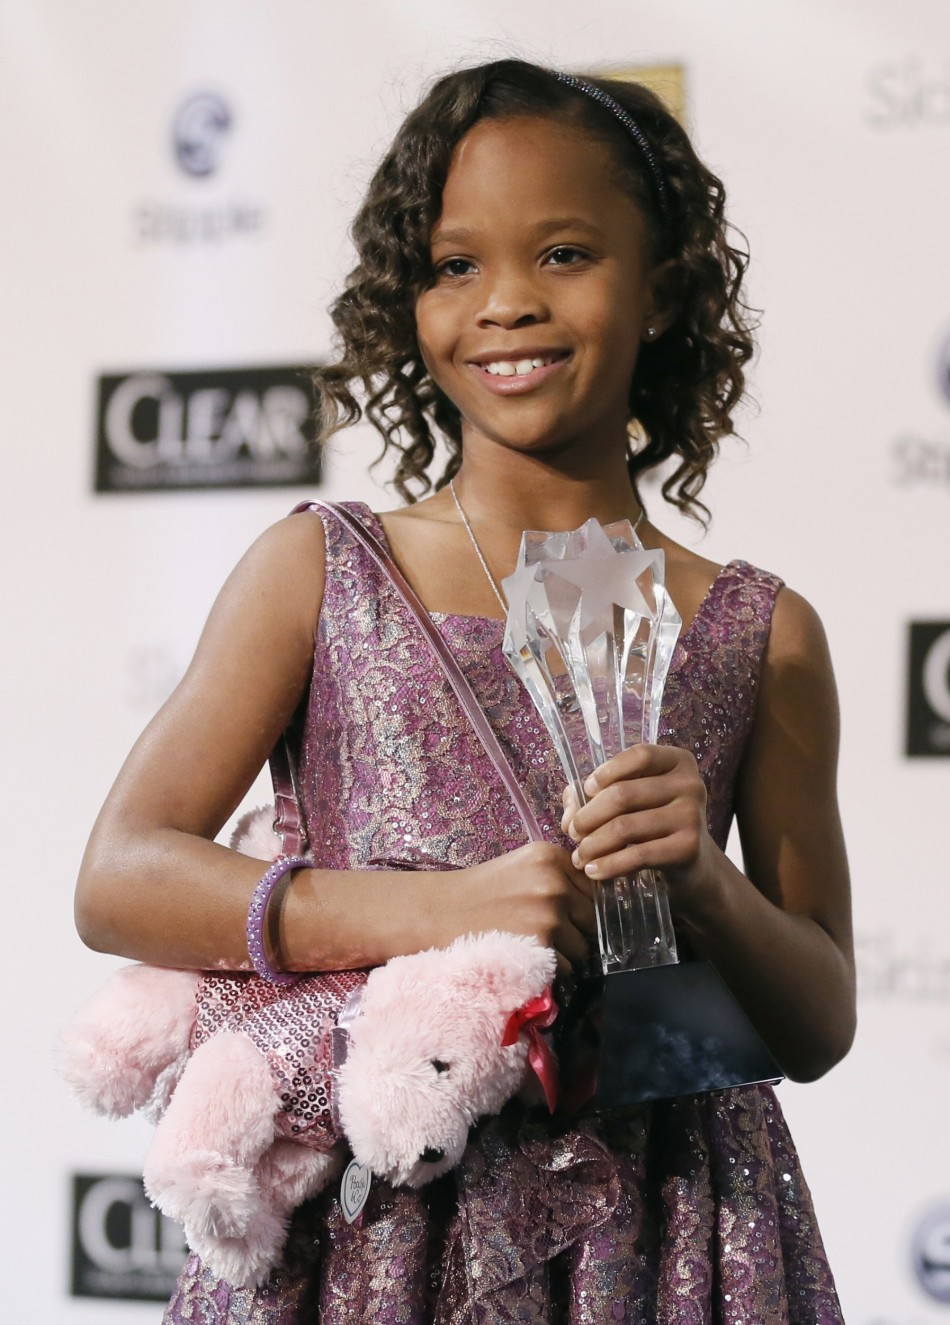 Quvenzhane Wallis accepts the award for Best Young ActorActress for her role in Beasts of the Southern Wild at the 2013 Critics Choice Awards in Santa Monica